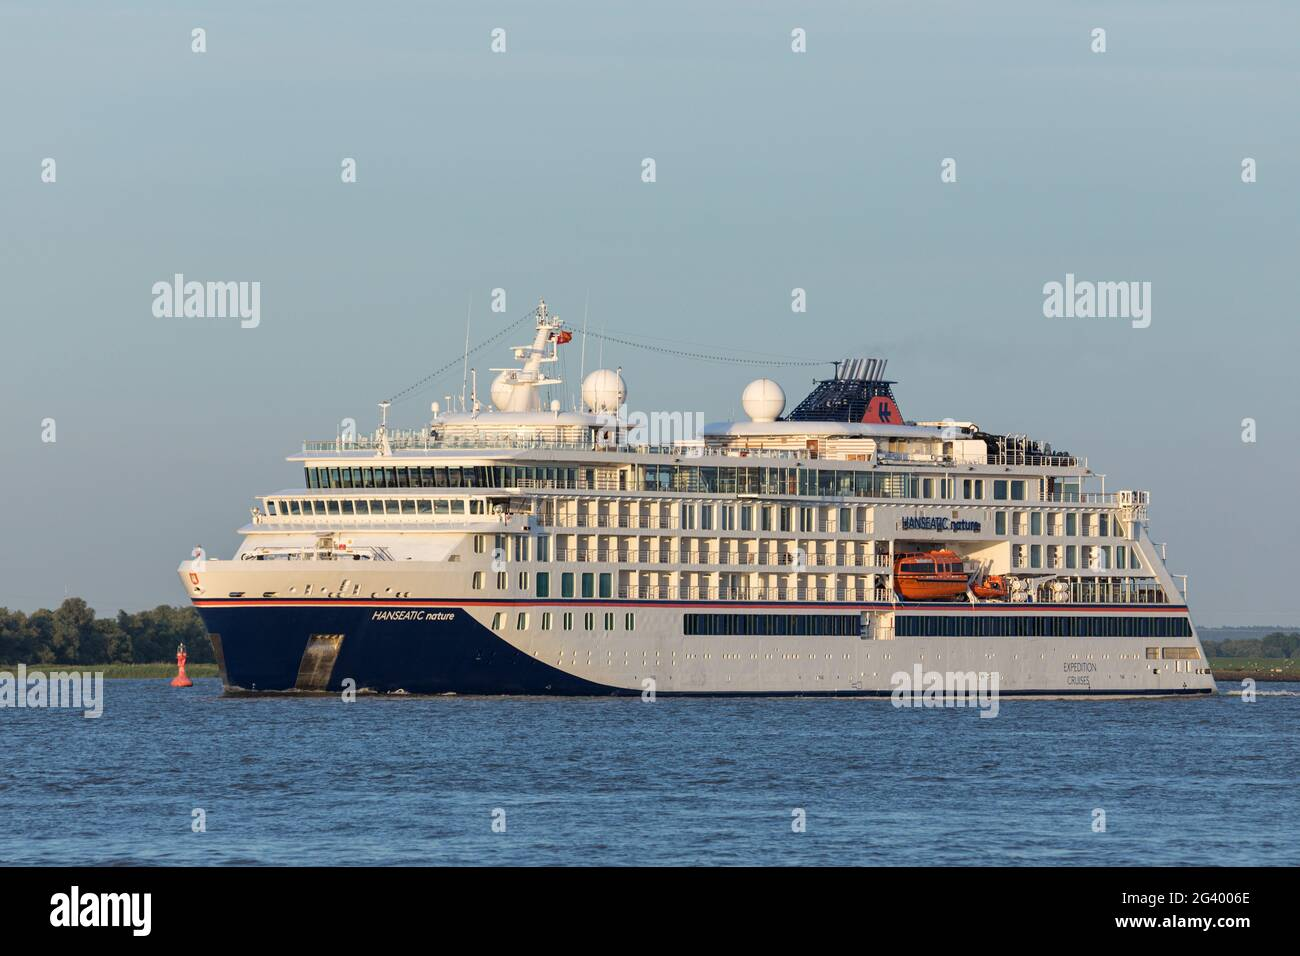 Stade, Germany - June15, 2021: Expedition cruise ship HANSEATIC NATURE on Elbe river on a voyage to Norway Stock Photo